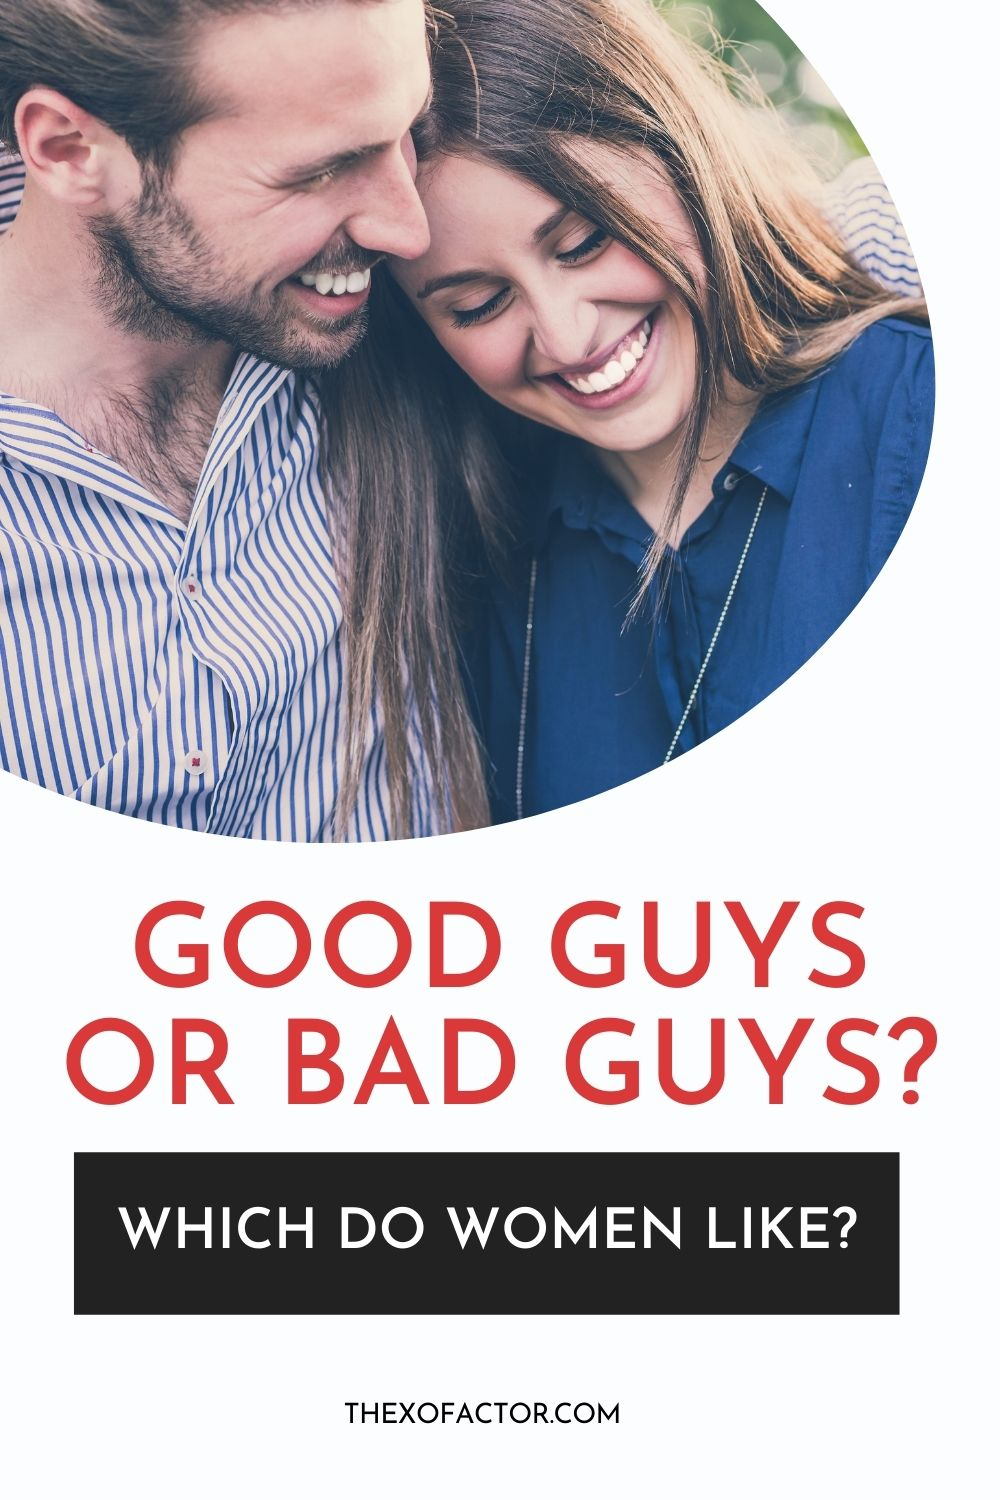 good guys or bad guys? which do women like?